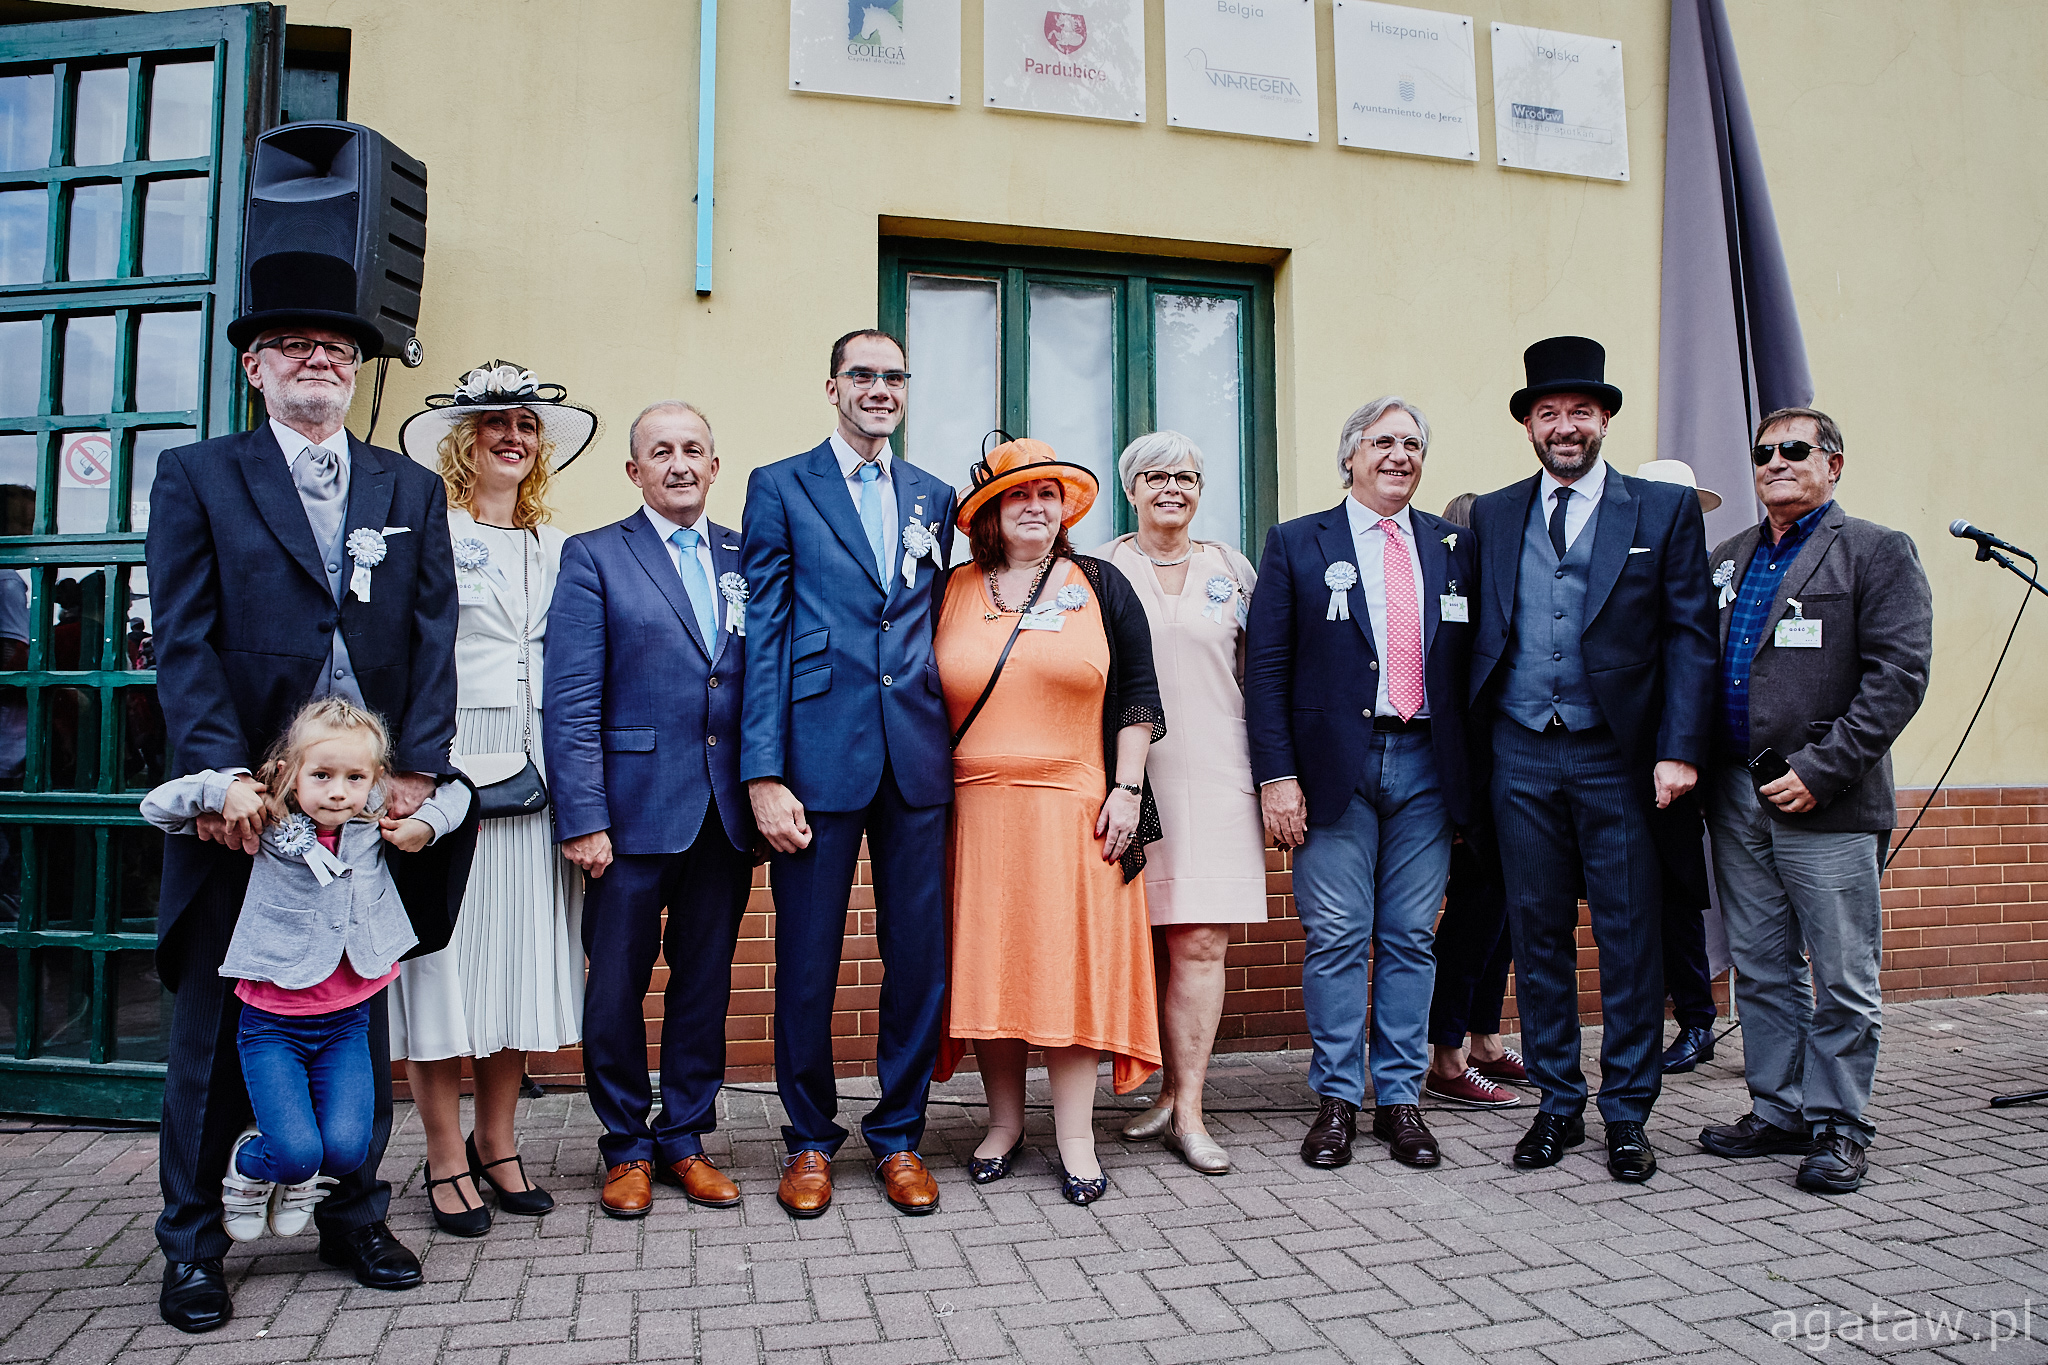 img: Euro Equus na Partynicach